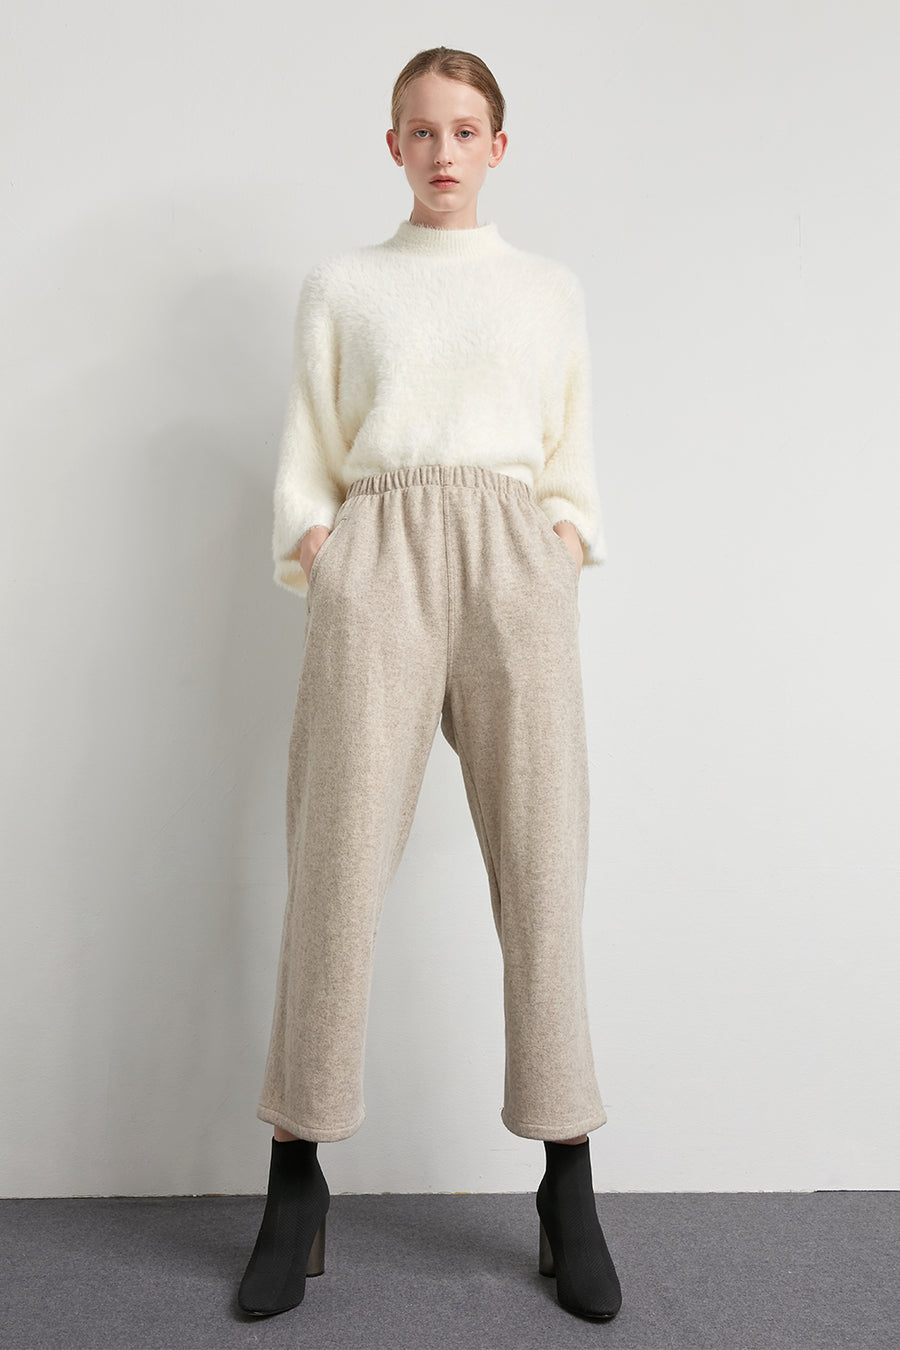 Elasticated wool trousers - Zelle Studio